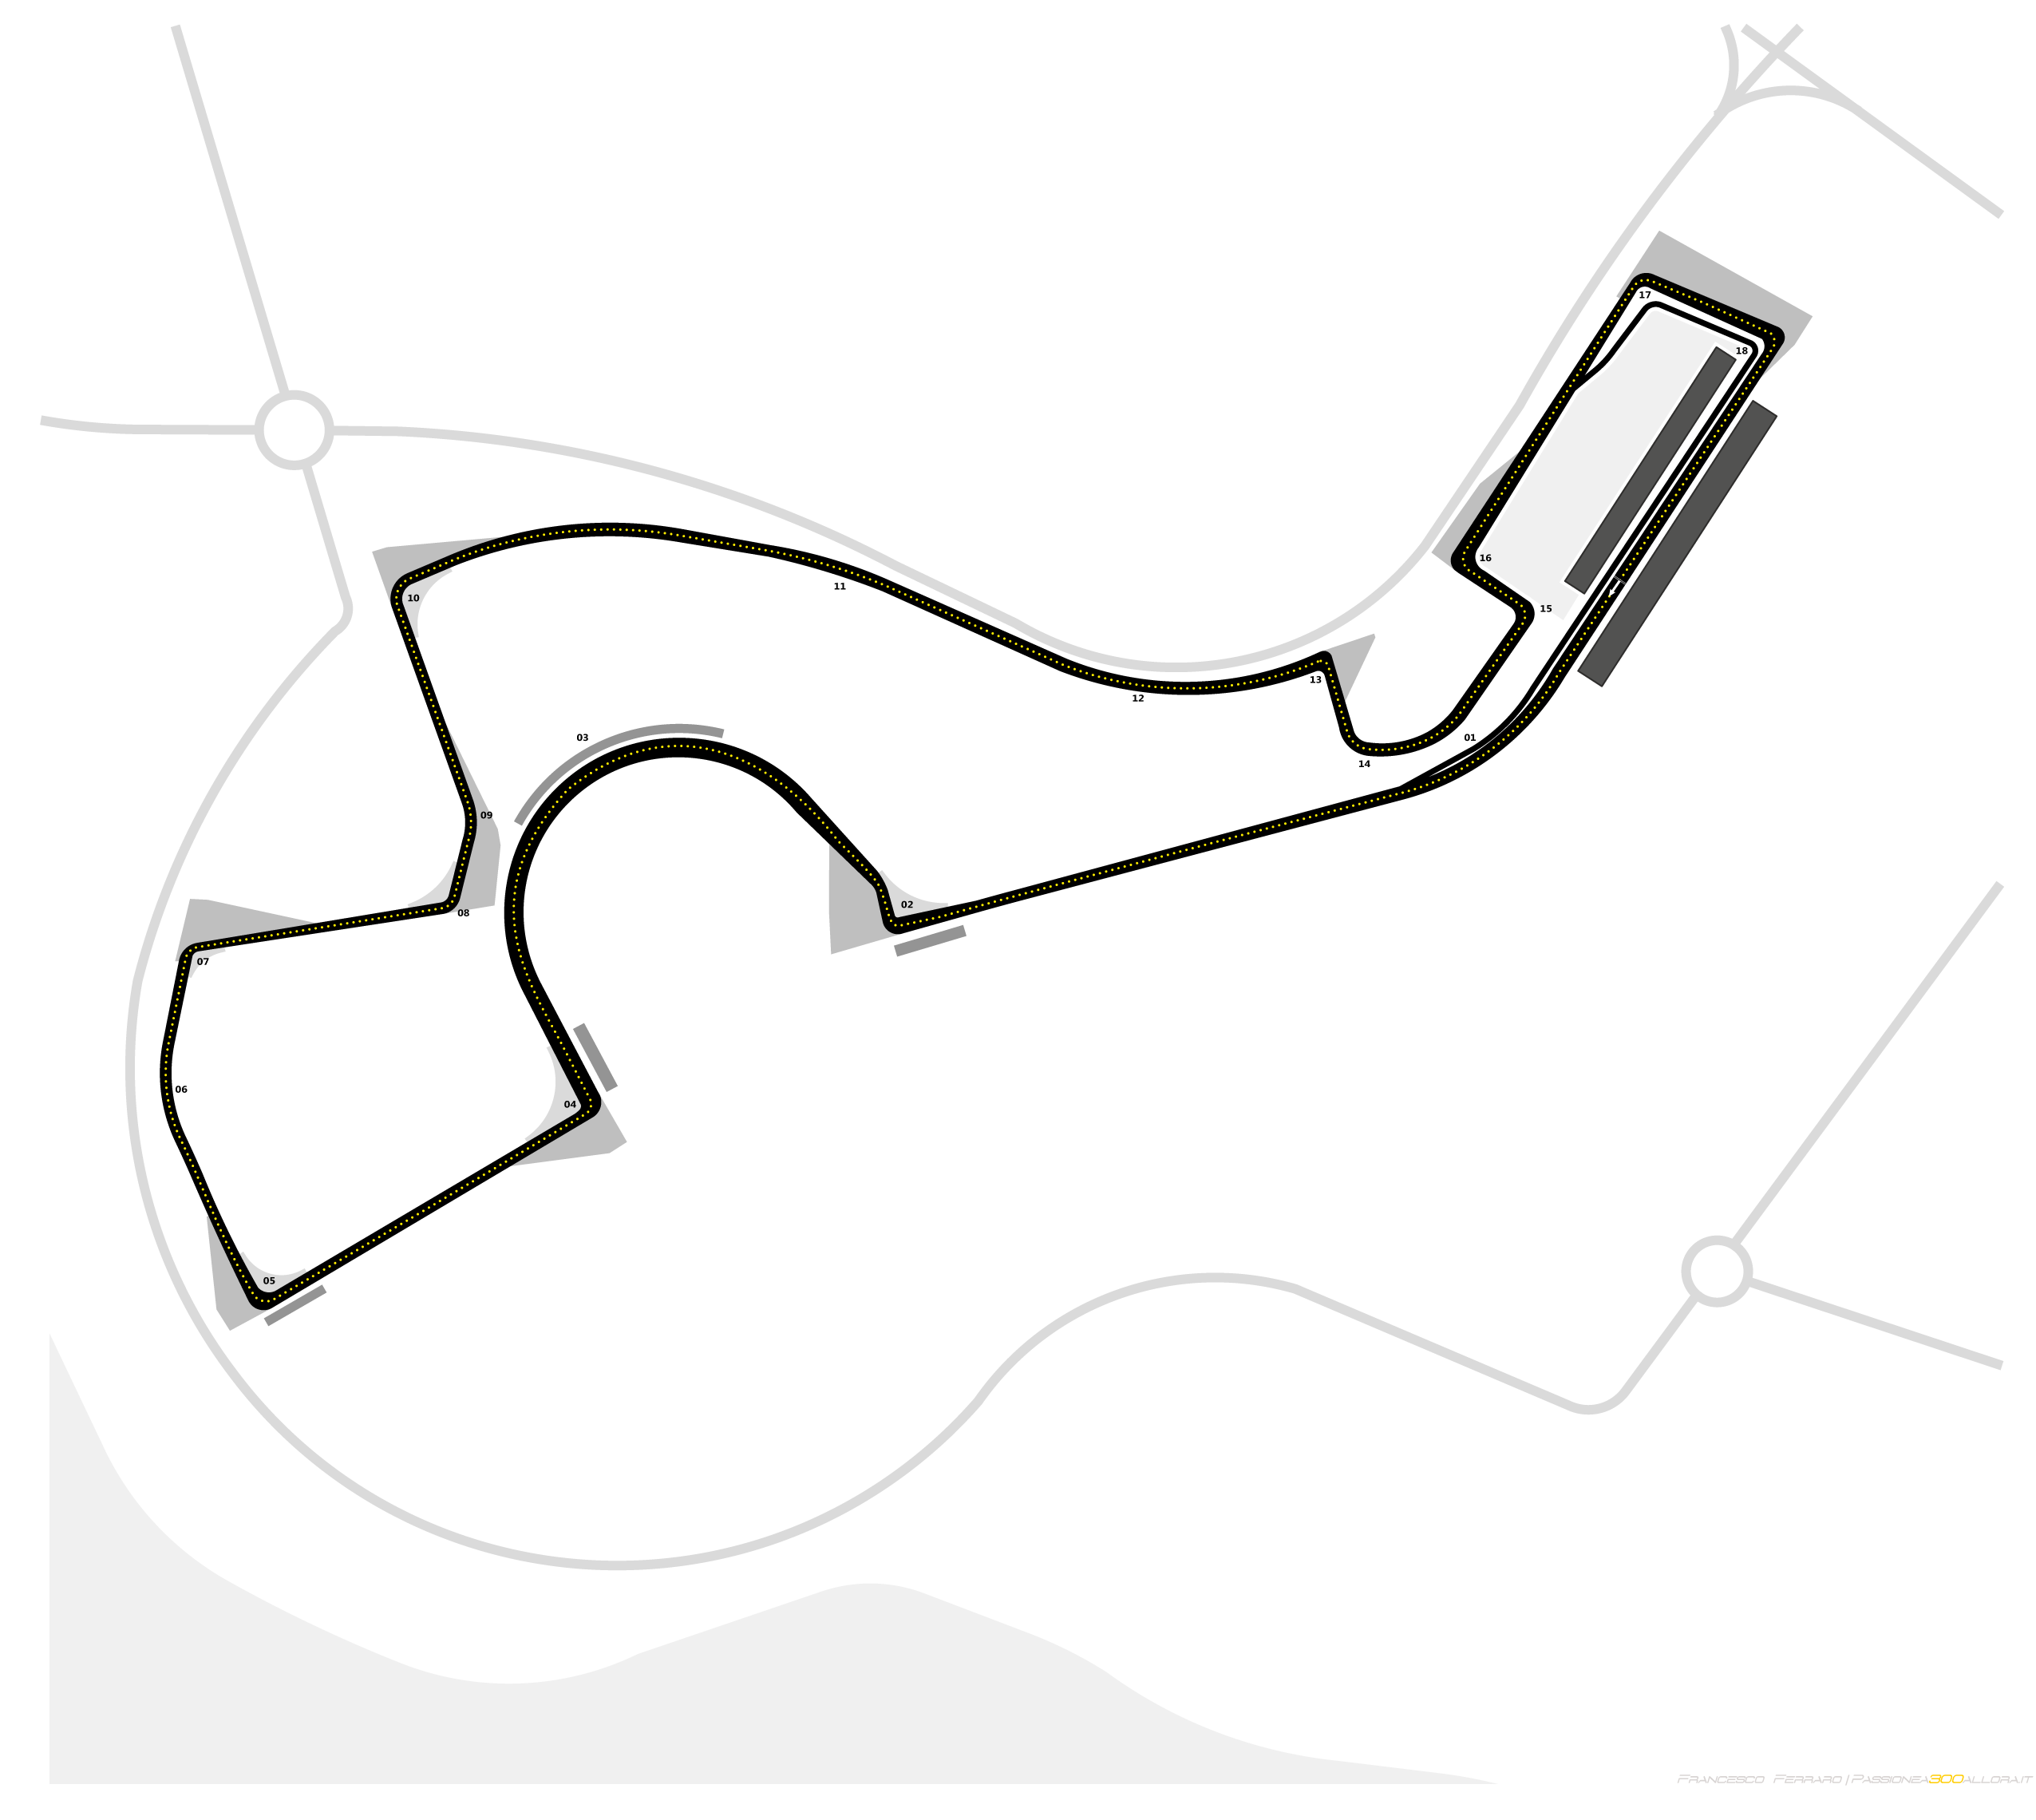 Sochi_International_Street_Circuit